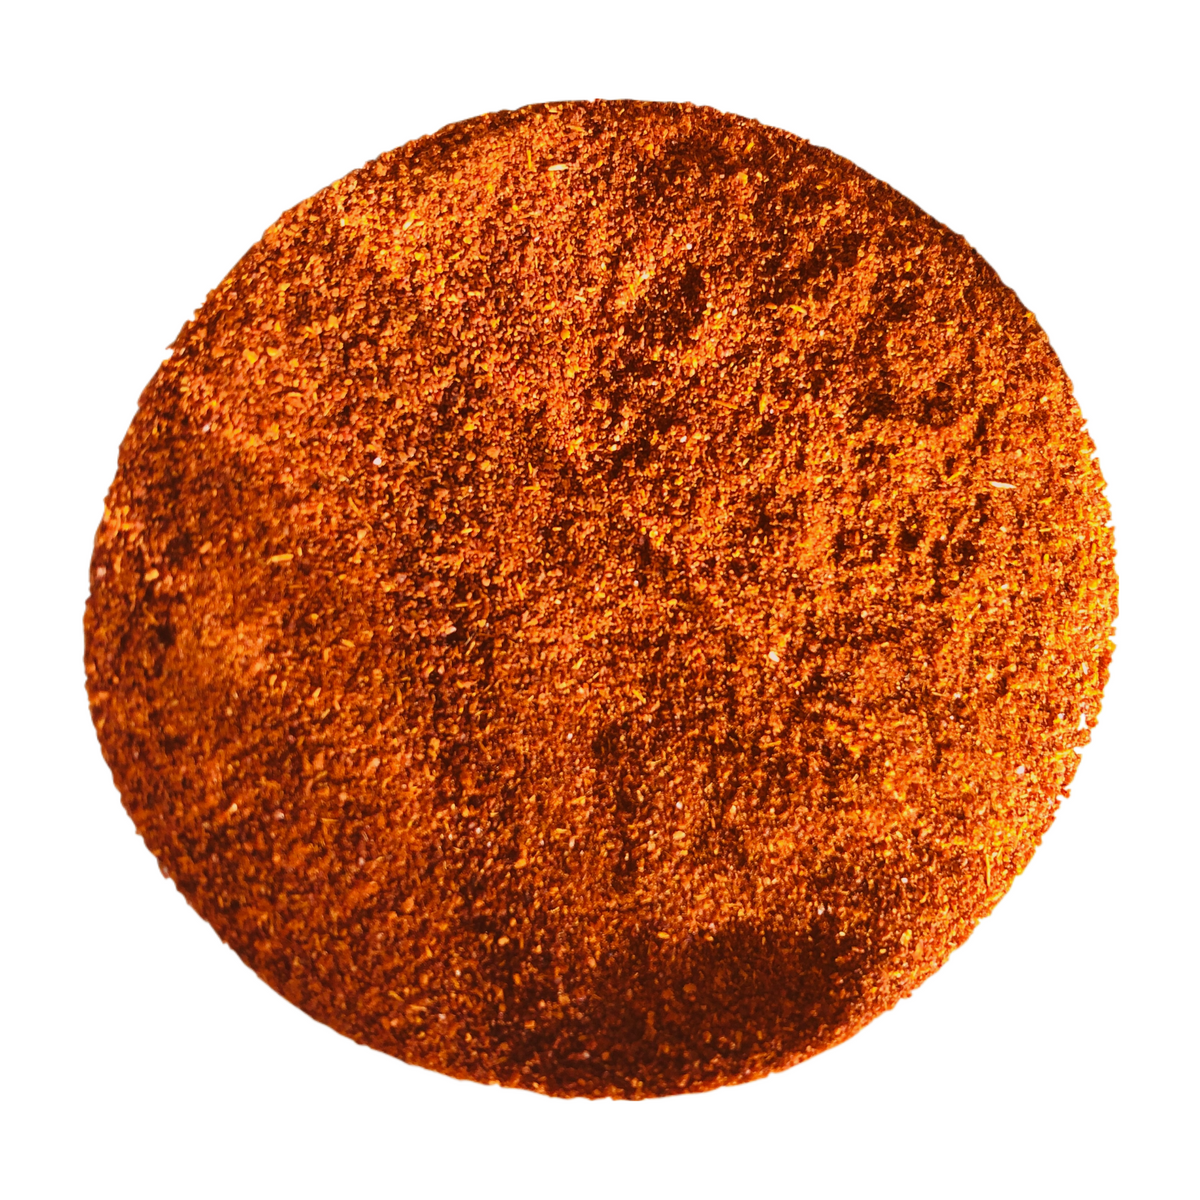 Spanish paprika ground